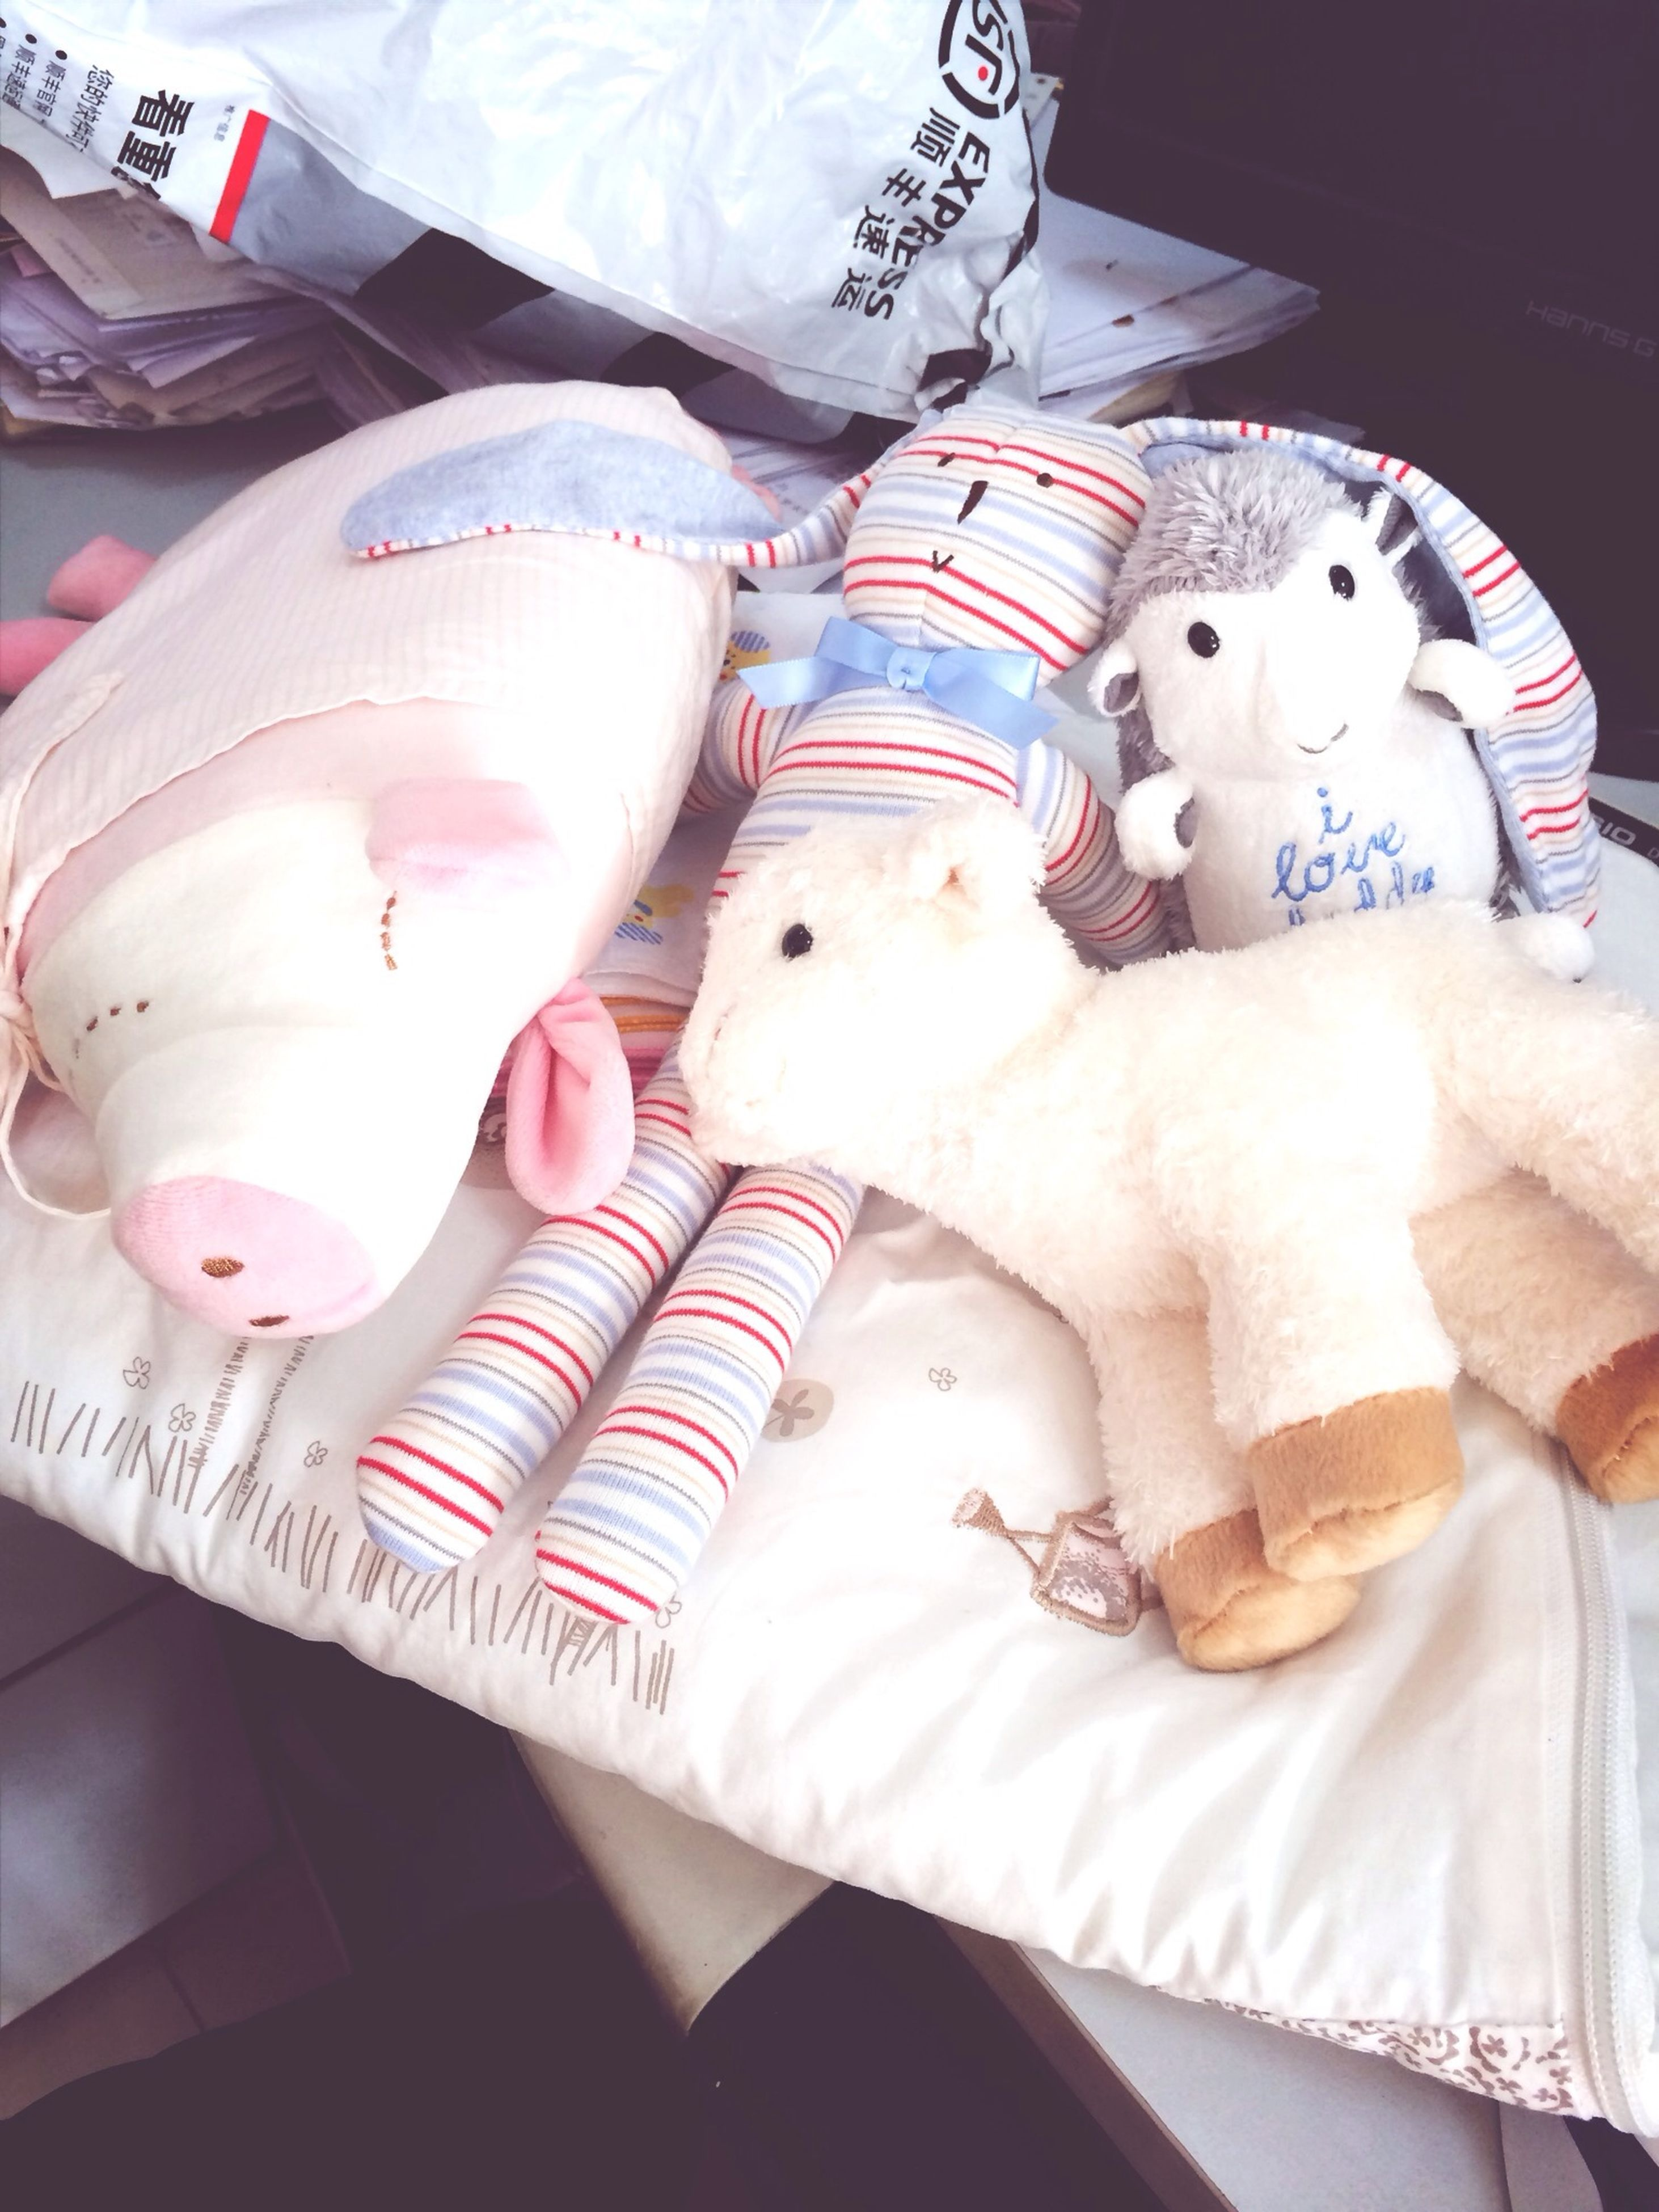 indoors, bed, relaxation, stuffed toy, high angle view, pillow, animal representation, toy, lying down, animal themes, blanket, resting, home interior, domestic animals, white color, bedroom, sitting, pets